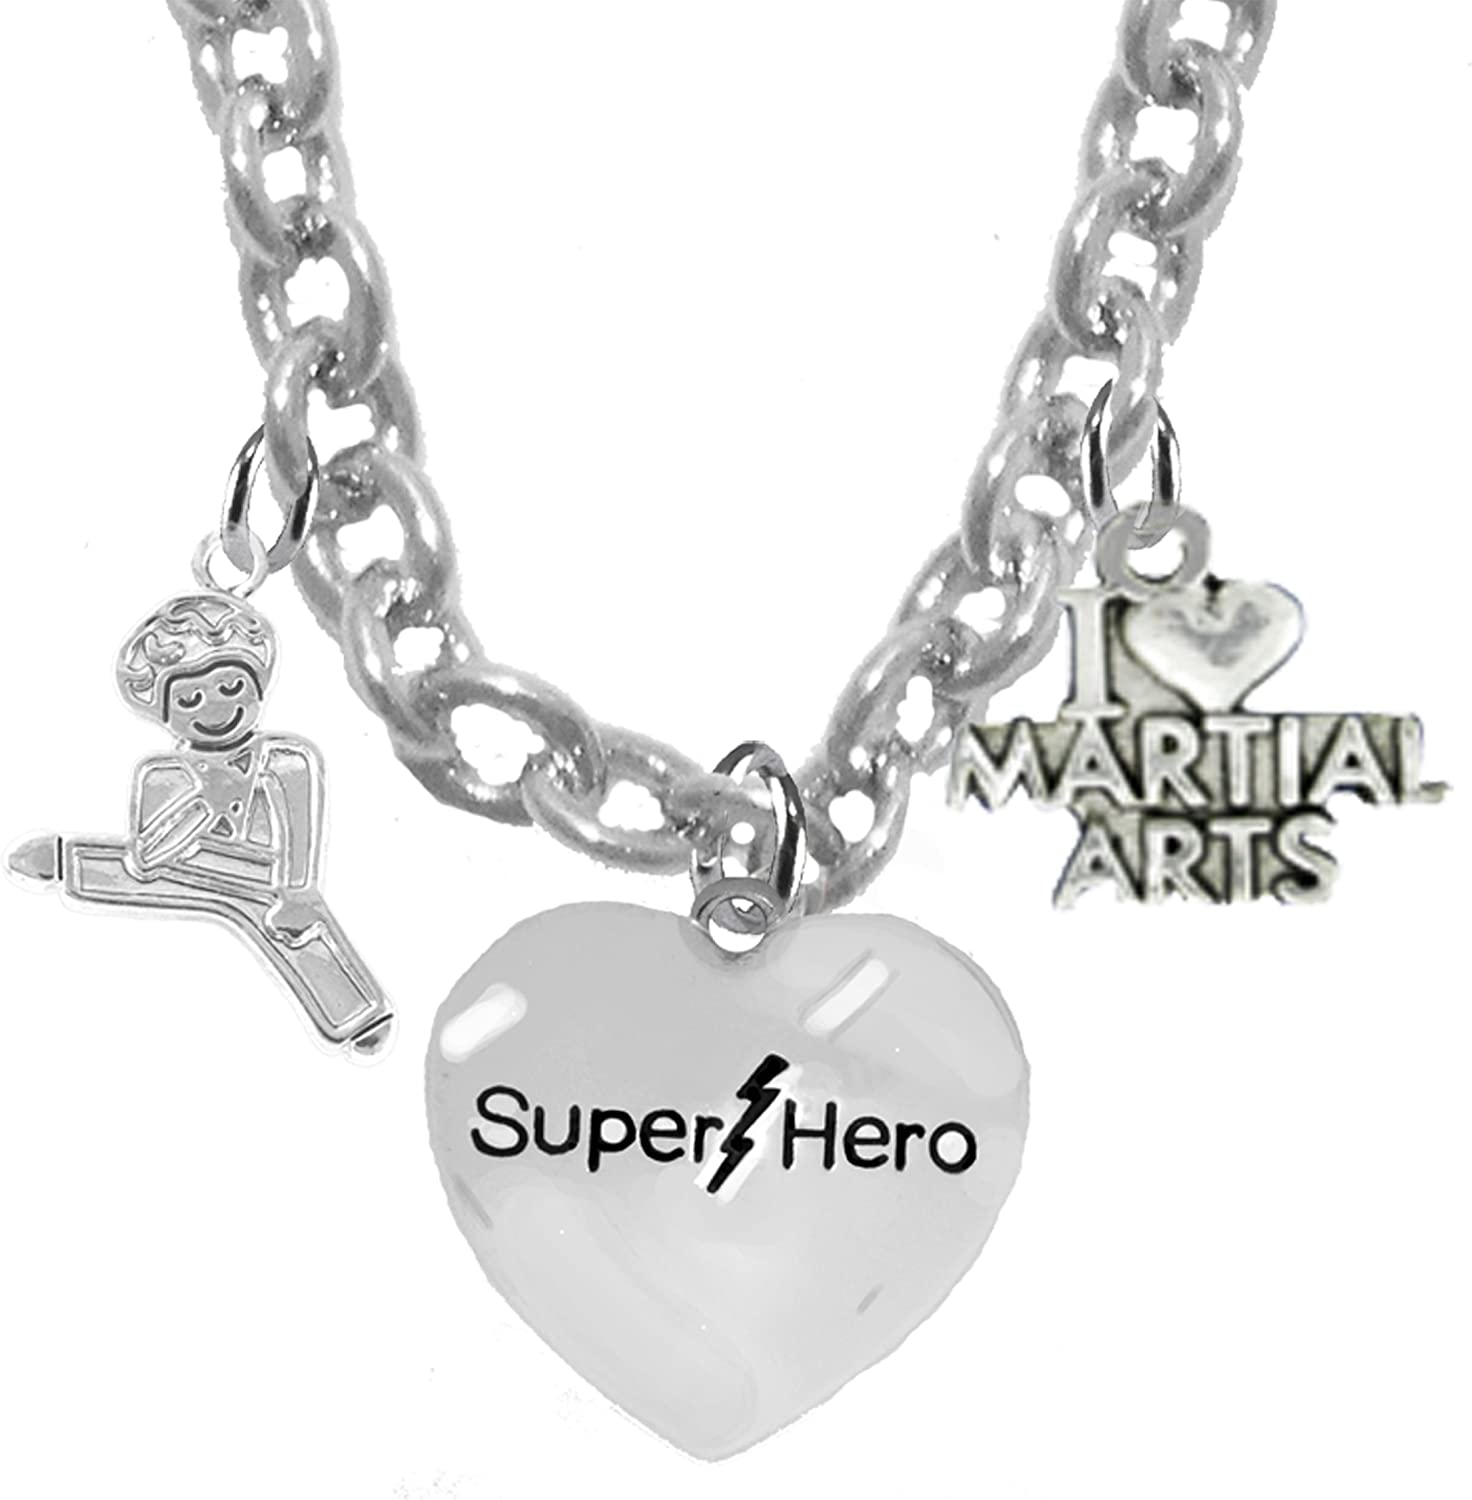 Cardinali/® Jewelry Childrens Martial Arts Lead And Cadmium Free Karate Jewelry Super Hero Kickboxing Childrens Safe-Nickel Adjustable Necklace Hypoallergenic